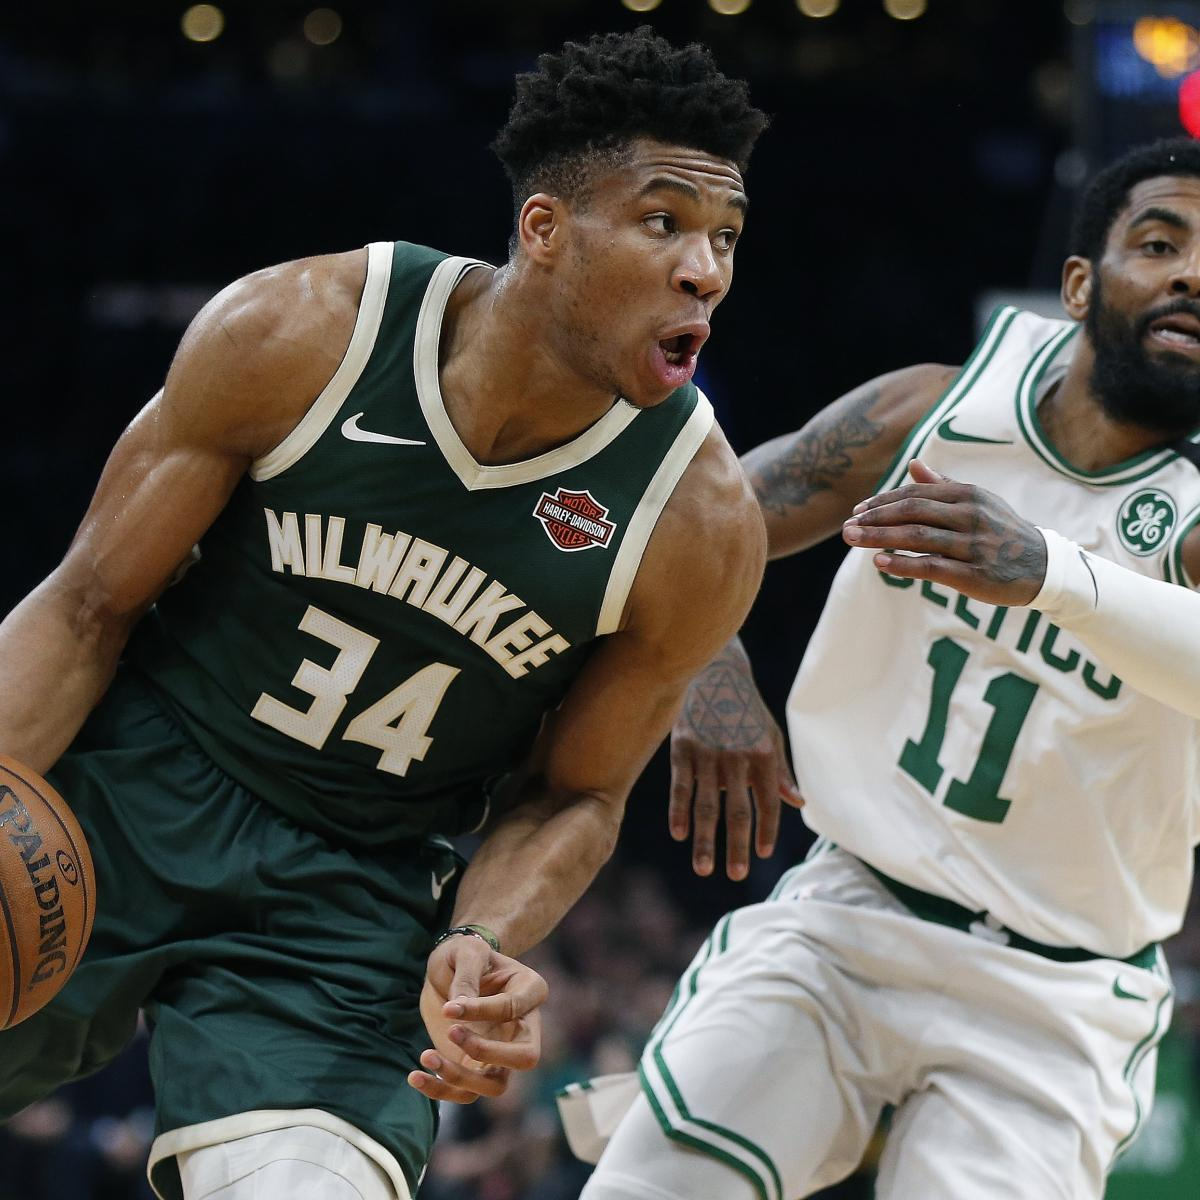 The Milwaukee Bucks seized a commanding 3-1 lead in their second-round playoff series against the Boston Celtics and continued their road dominance with a 113-101 victory in Monday's Game 4 at TD Garden...